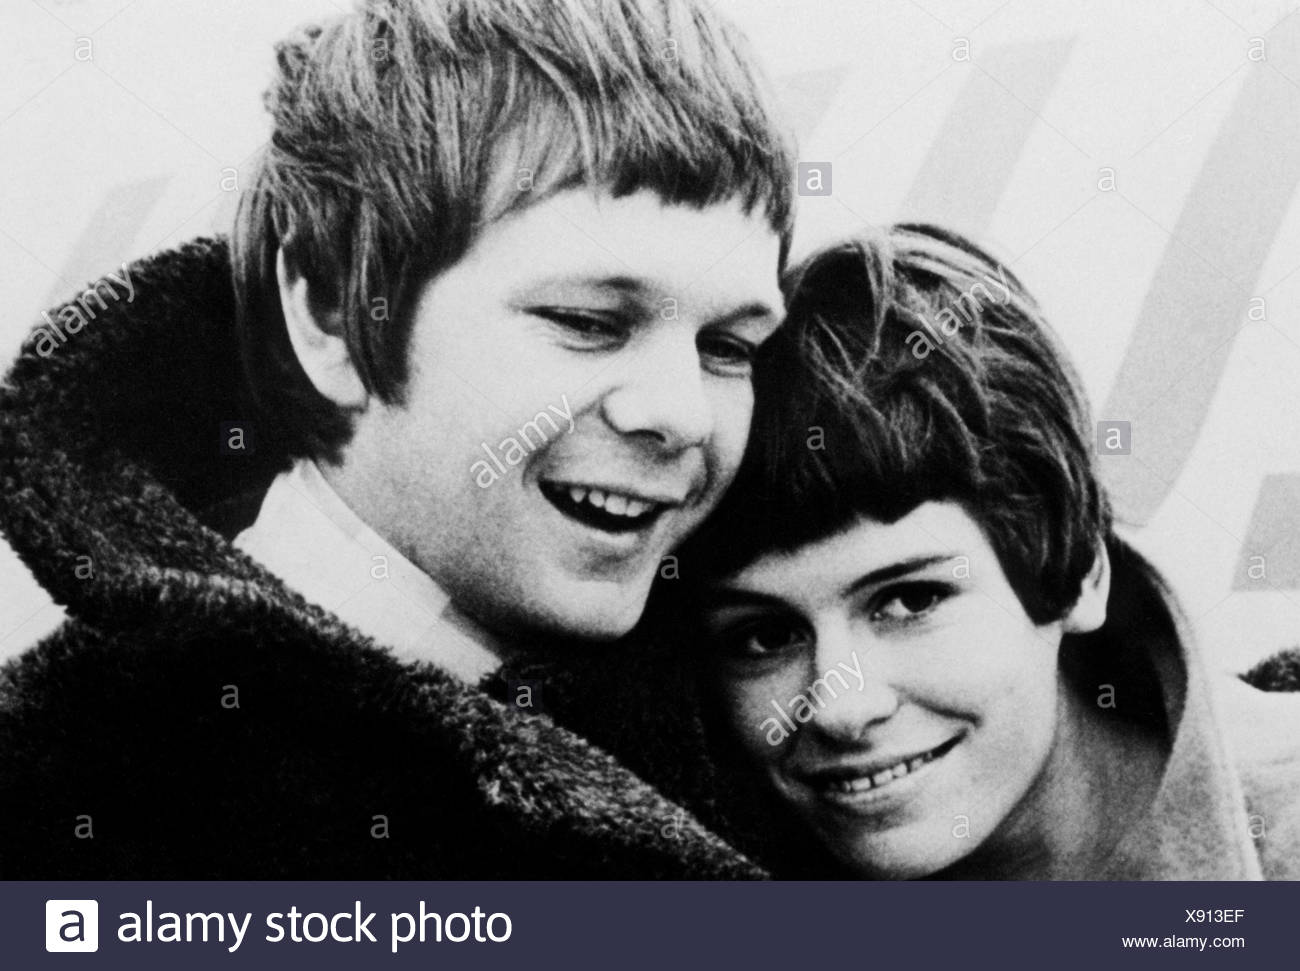 Bonney, Graham, * 2.6.1943, British singer, with Mary Roos, 1967, Stock Photo